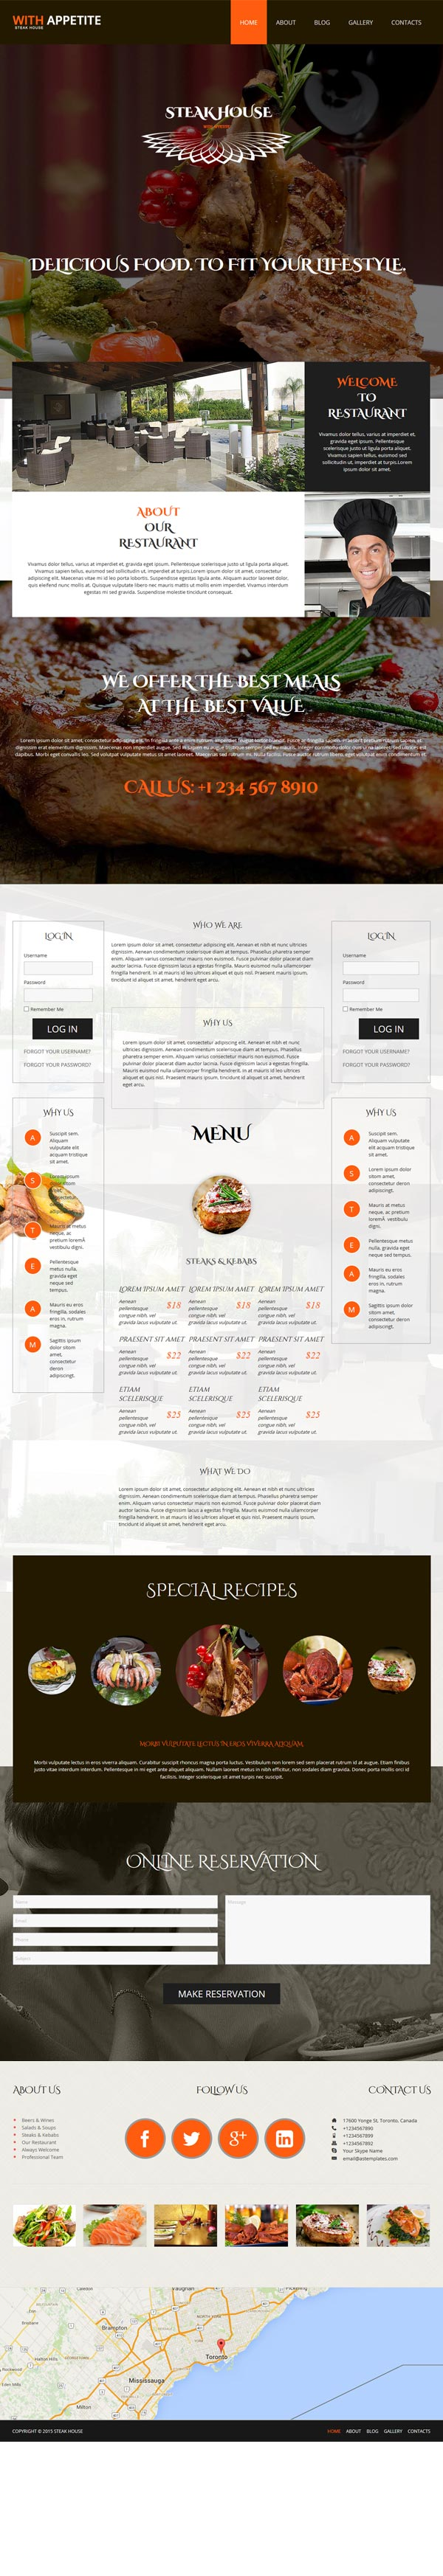 Steak House Joomla! template